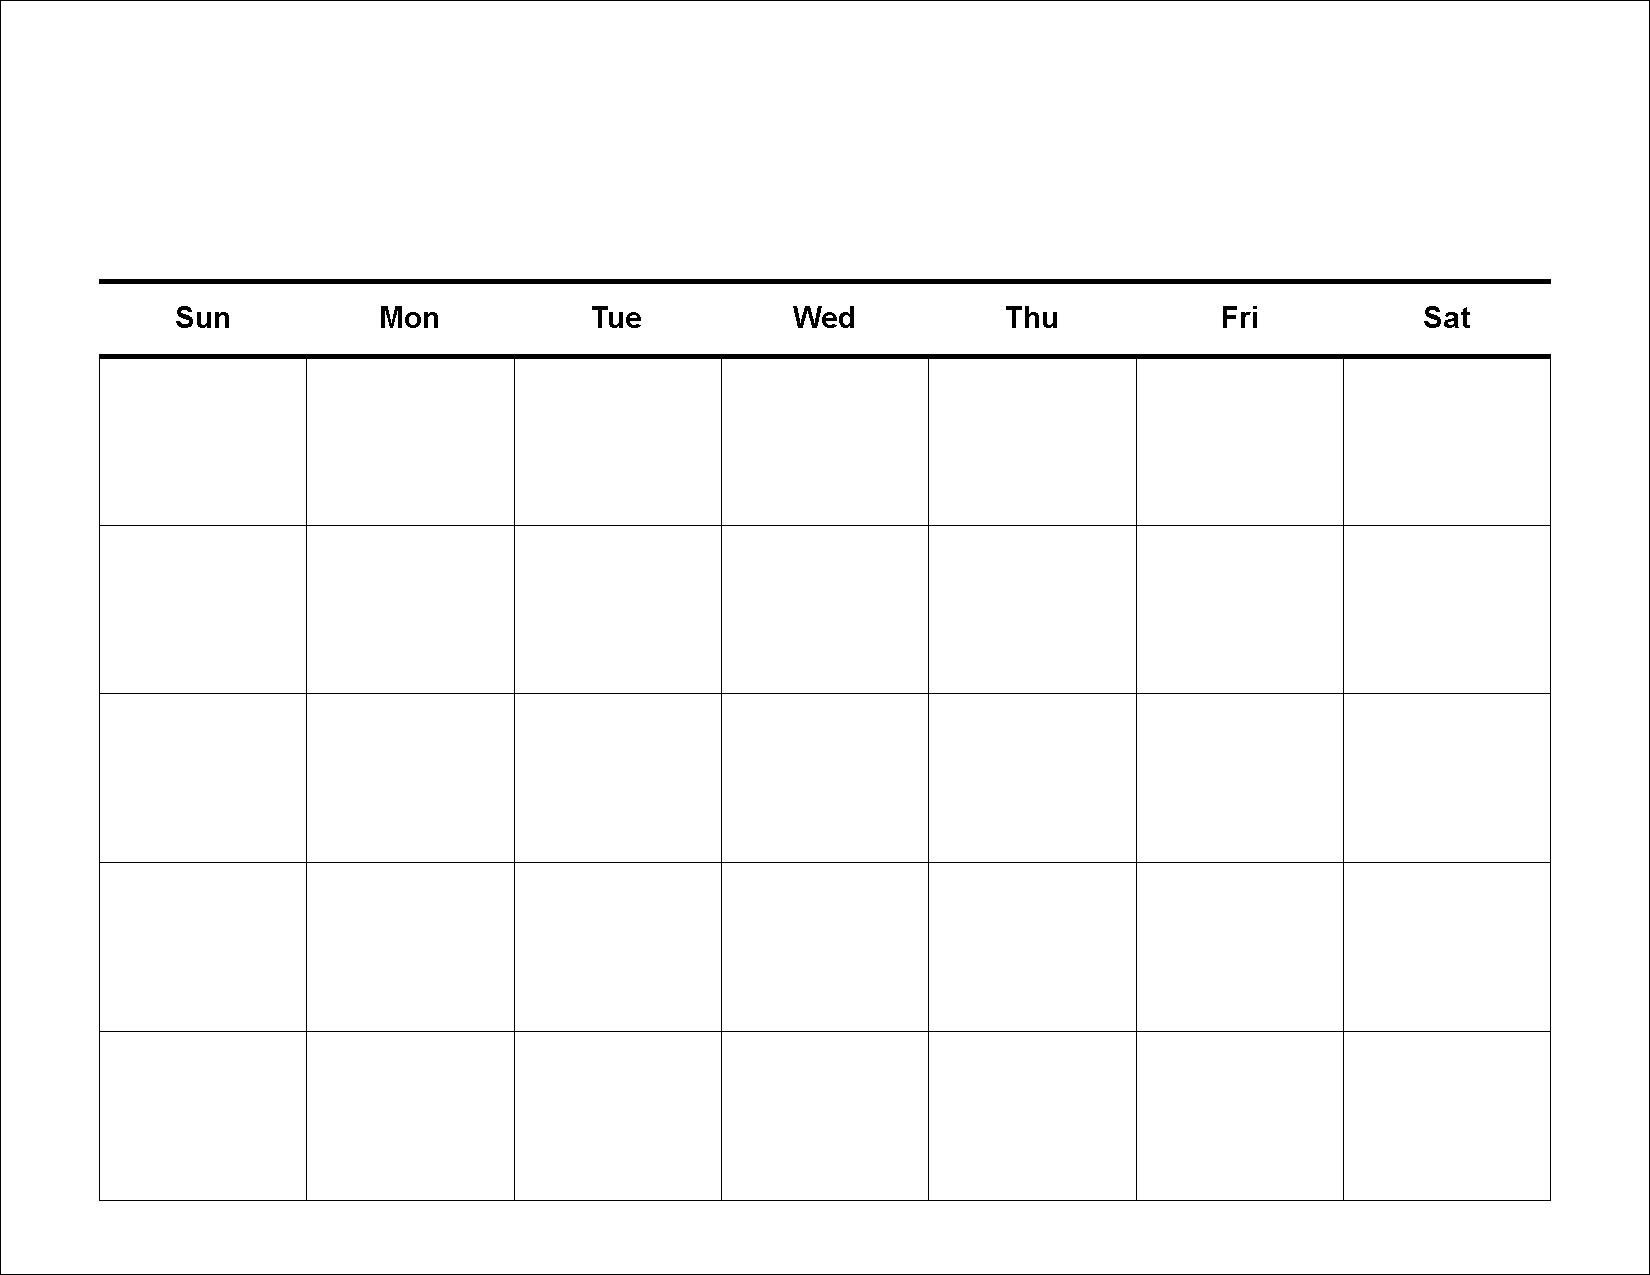 Free 5 Day Calendar Template | Printable Calendar Templates 2019 with regard to 5 Day Calendar Template Free